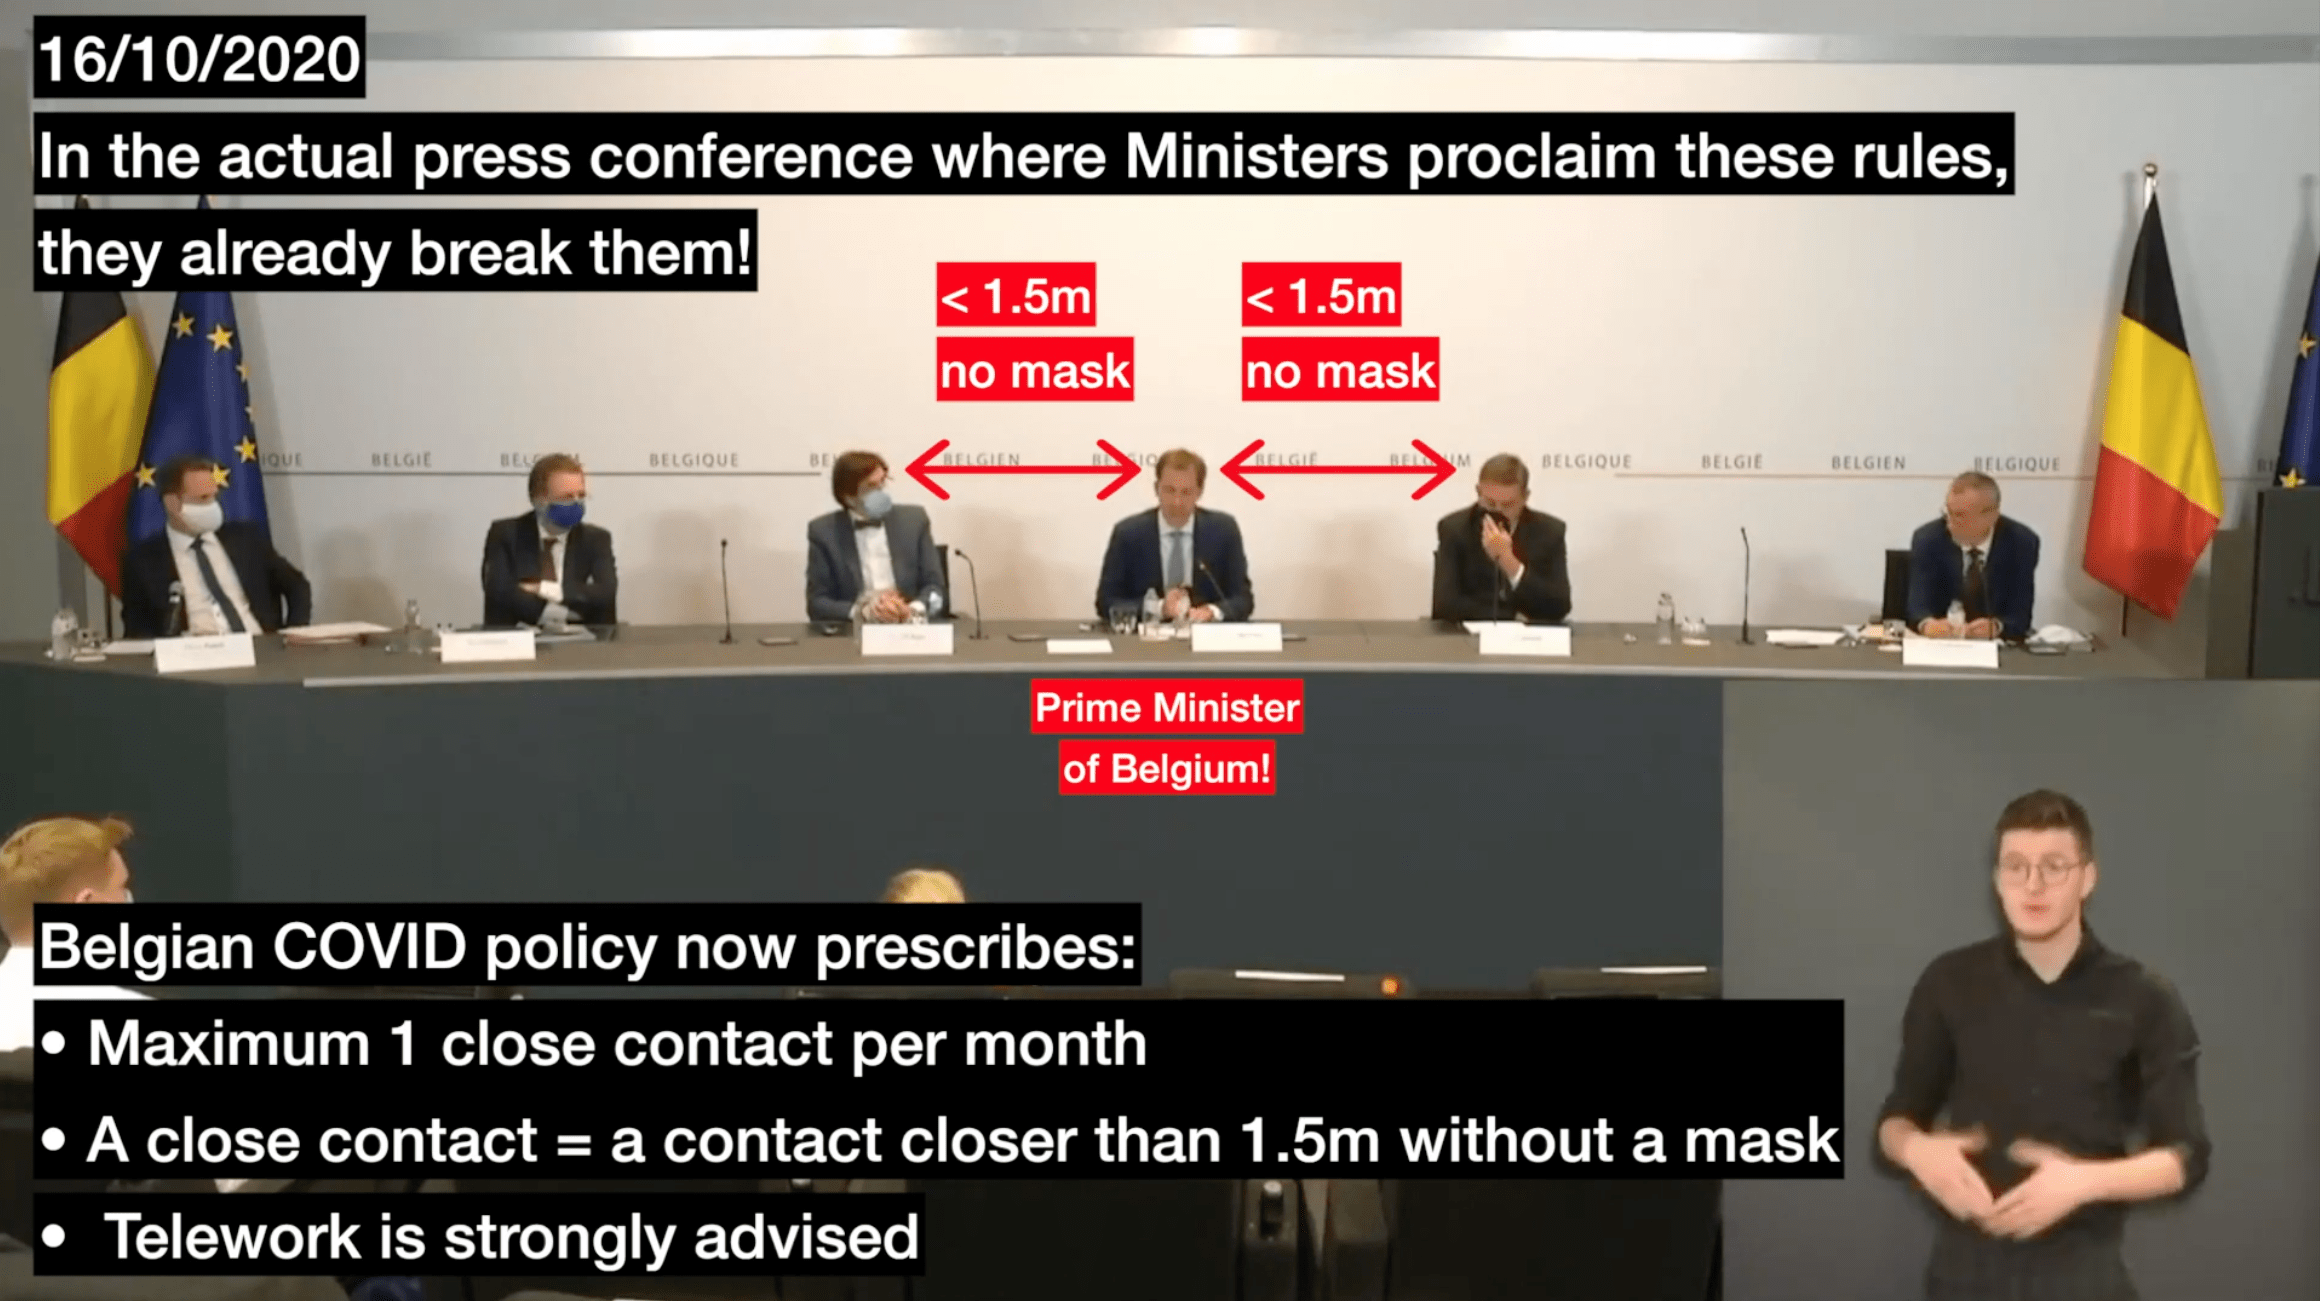 Belgian Prime Minister proclaims COVID rules in Press Conference, and breaks them! 16/10/2020